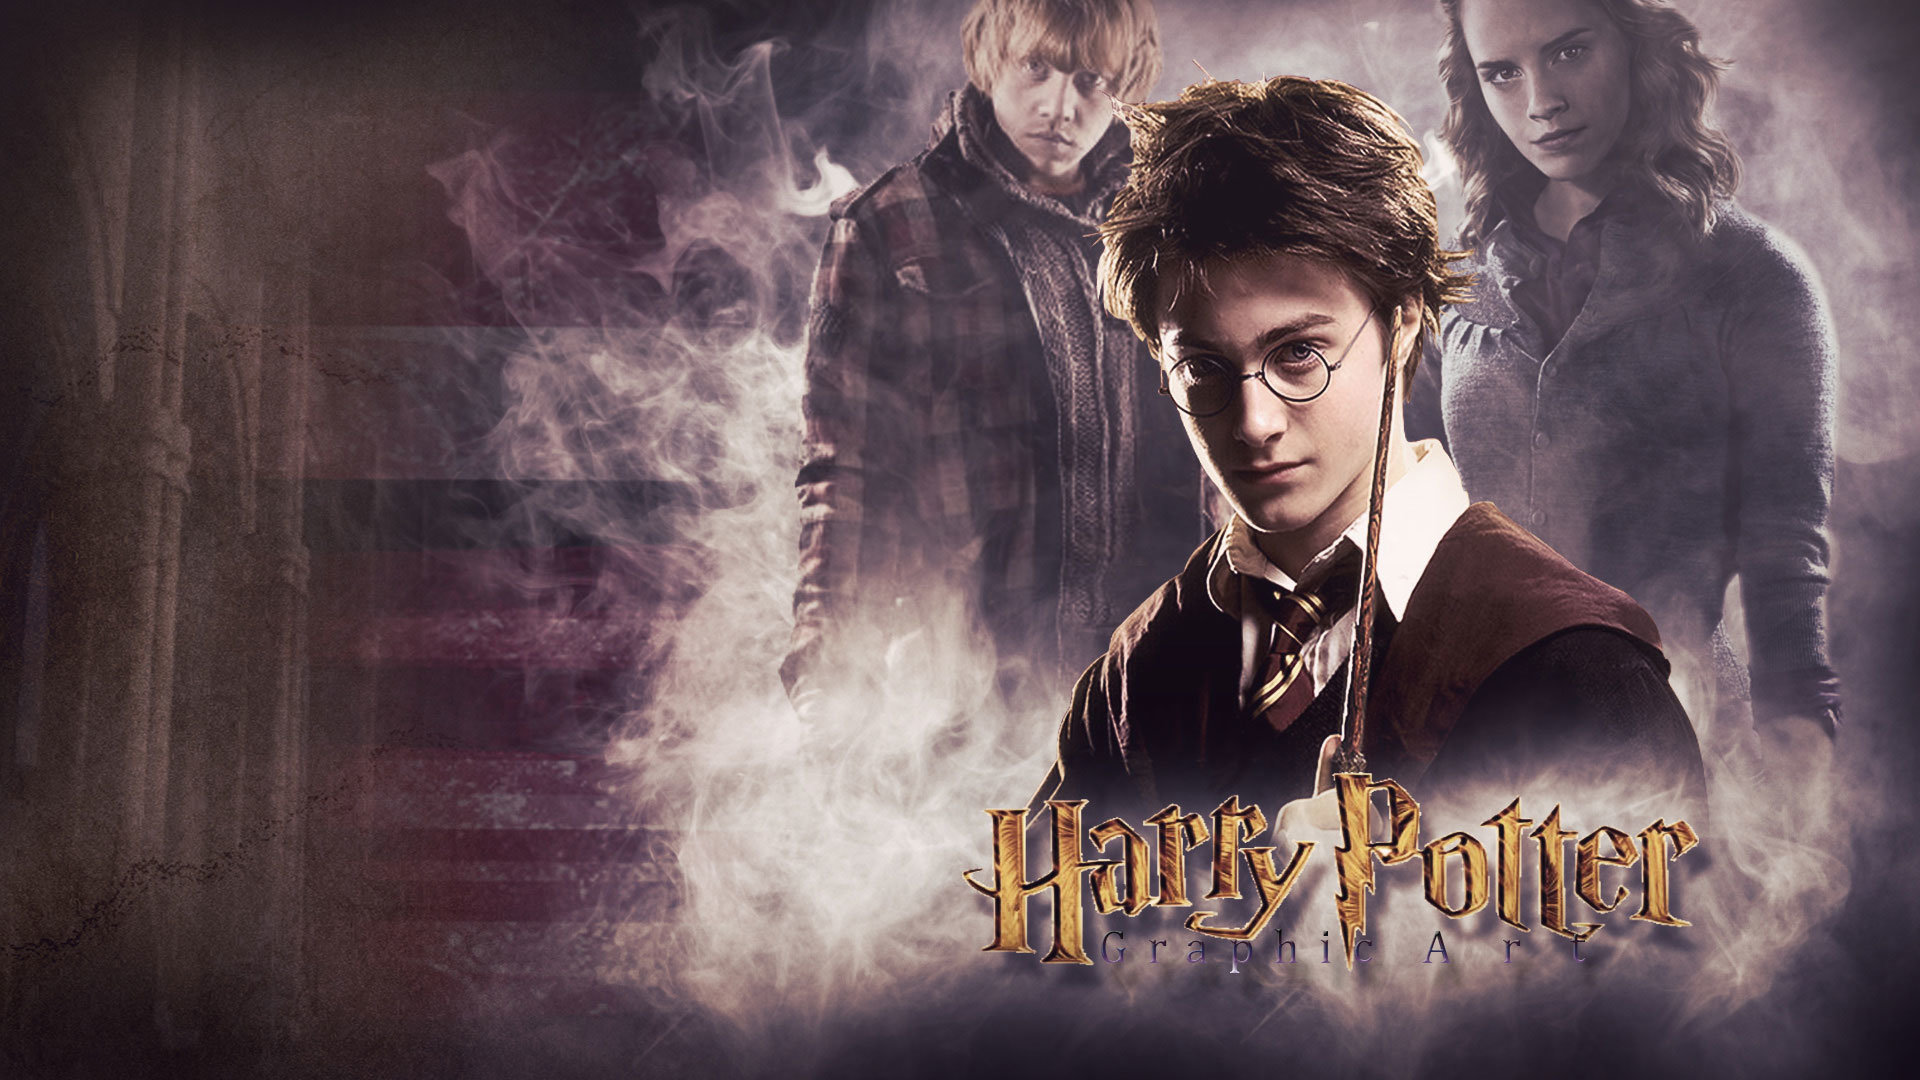 Harry Potter Wallpapers 1920x1080 Full Hd 1080p Desktop Backgrounds